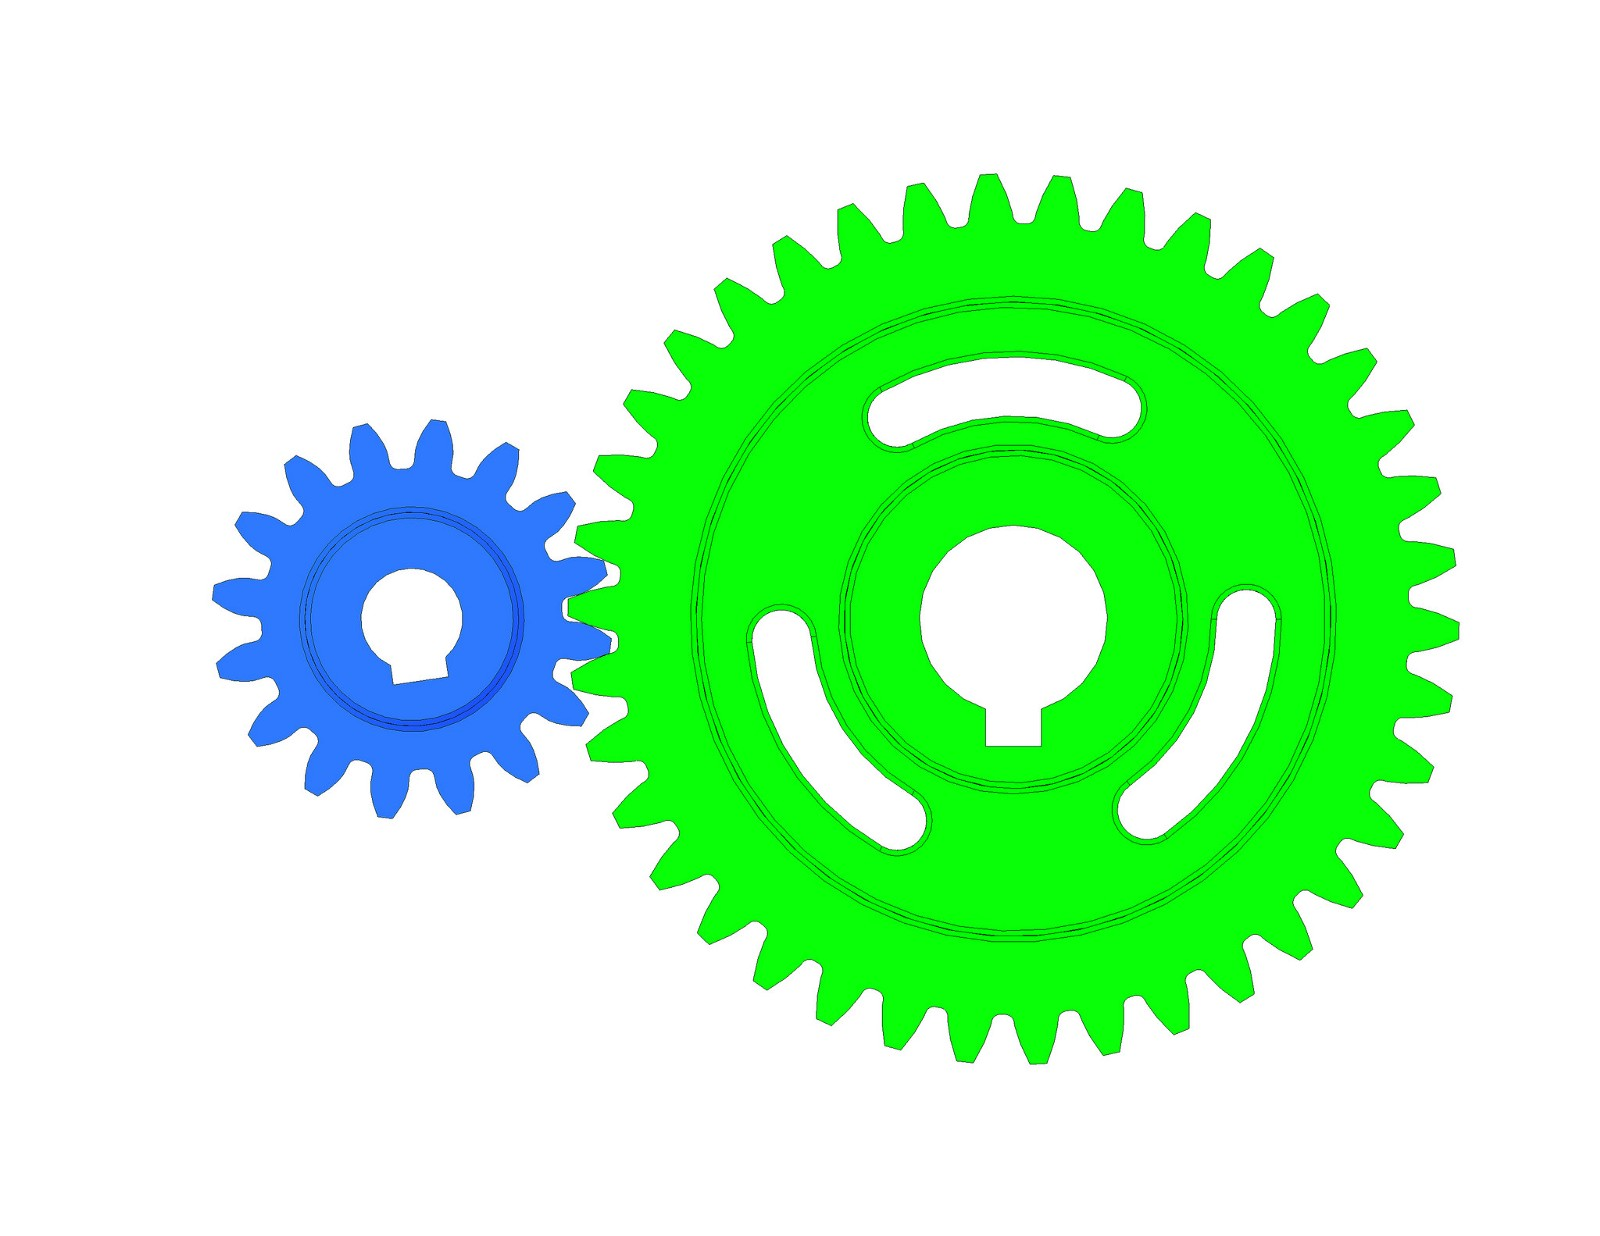 16 tooth gear (blue) and 38 tooth gear (green). This gear ratio is 2:1